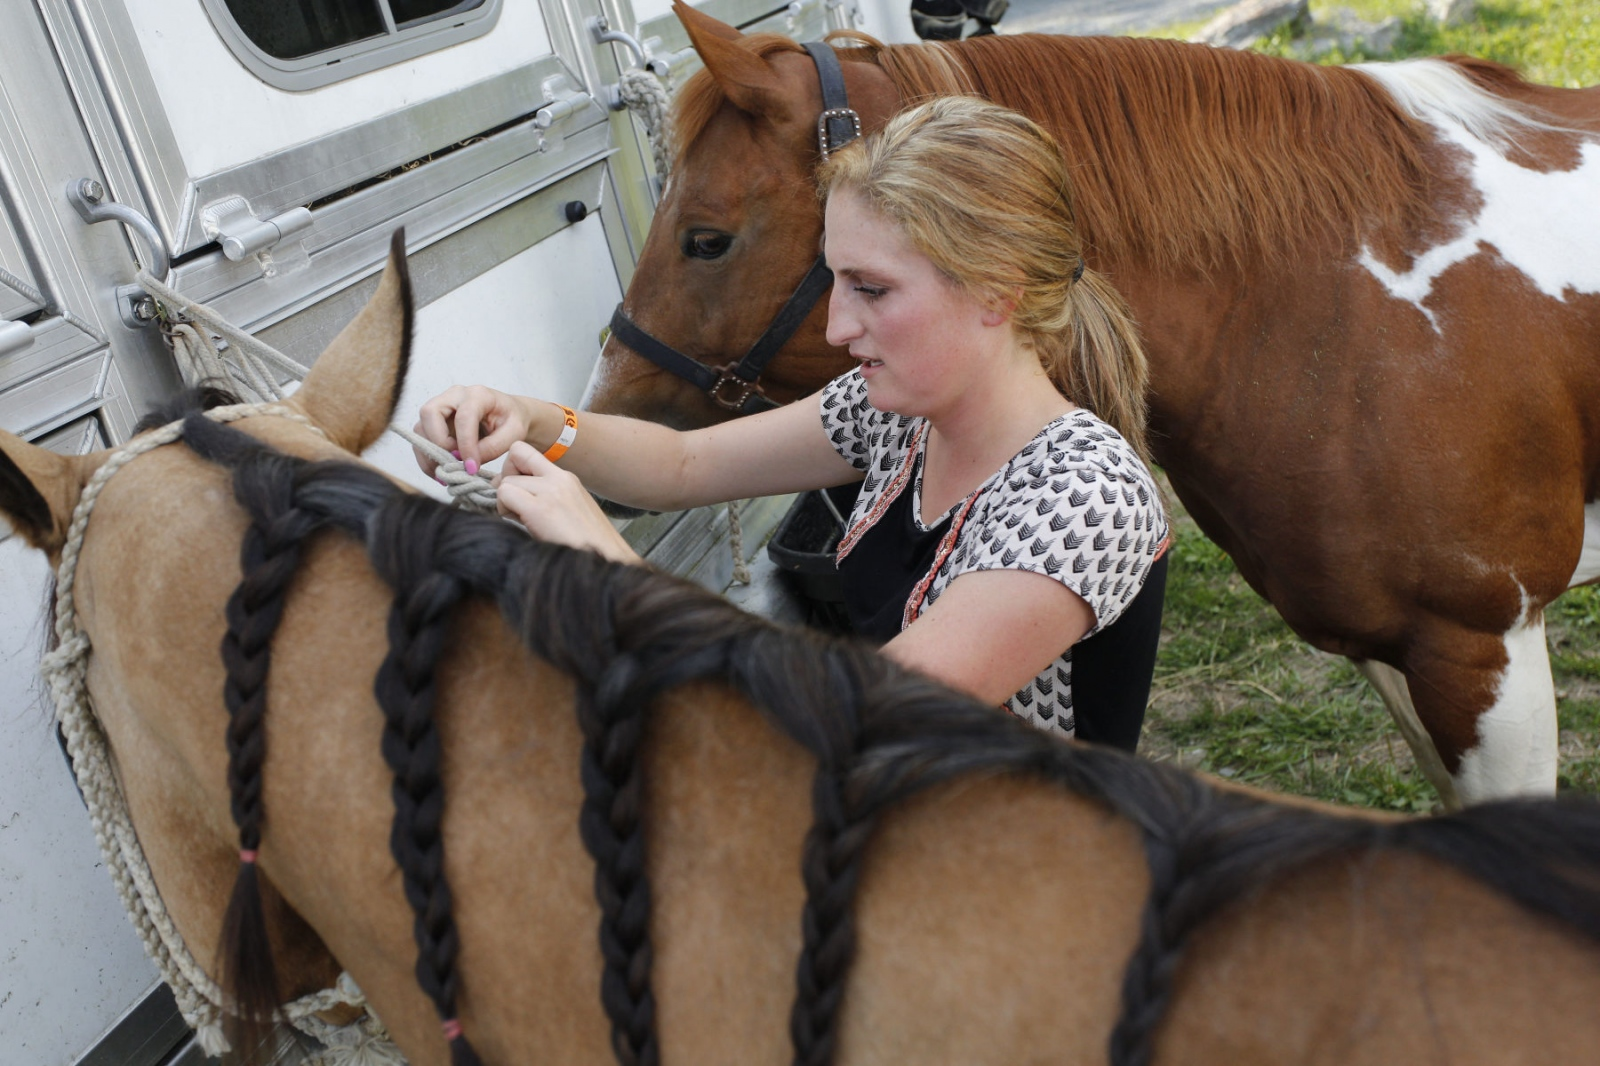 Taylor Young checking Tsunami's braids at the Malibu Rodeo in Milford, Pennsylvania.(Kevin C. Downs/Agence Cosmos)